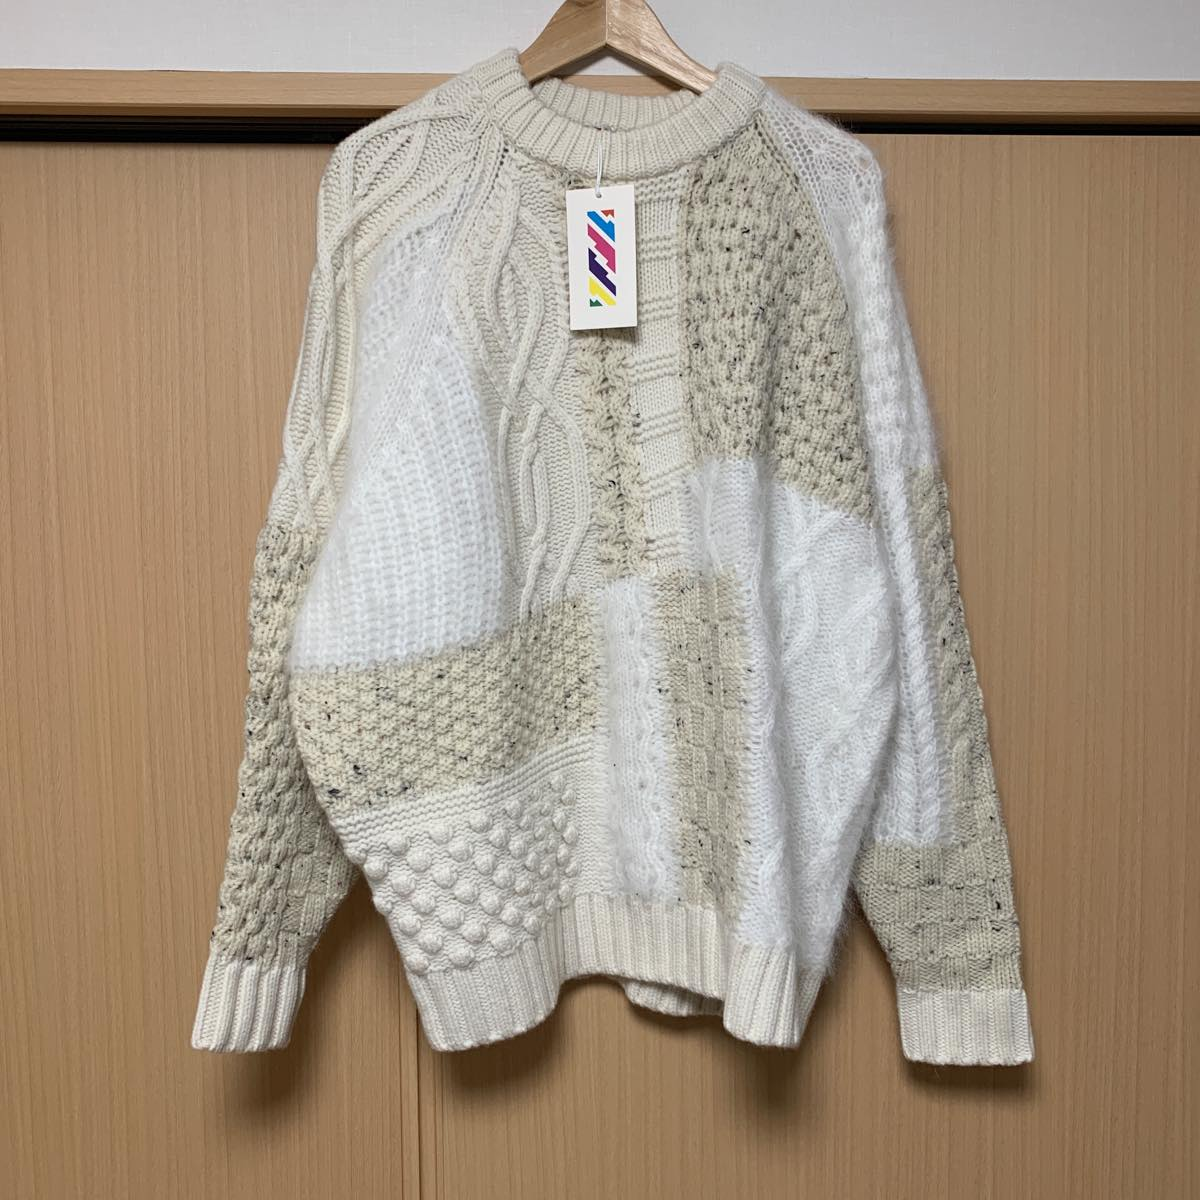 is-ness (イズネス)MOSAIC KNITTED SWEATER / モザイクニットセーター [31KNT01] Natural